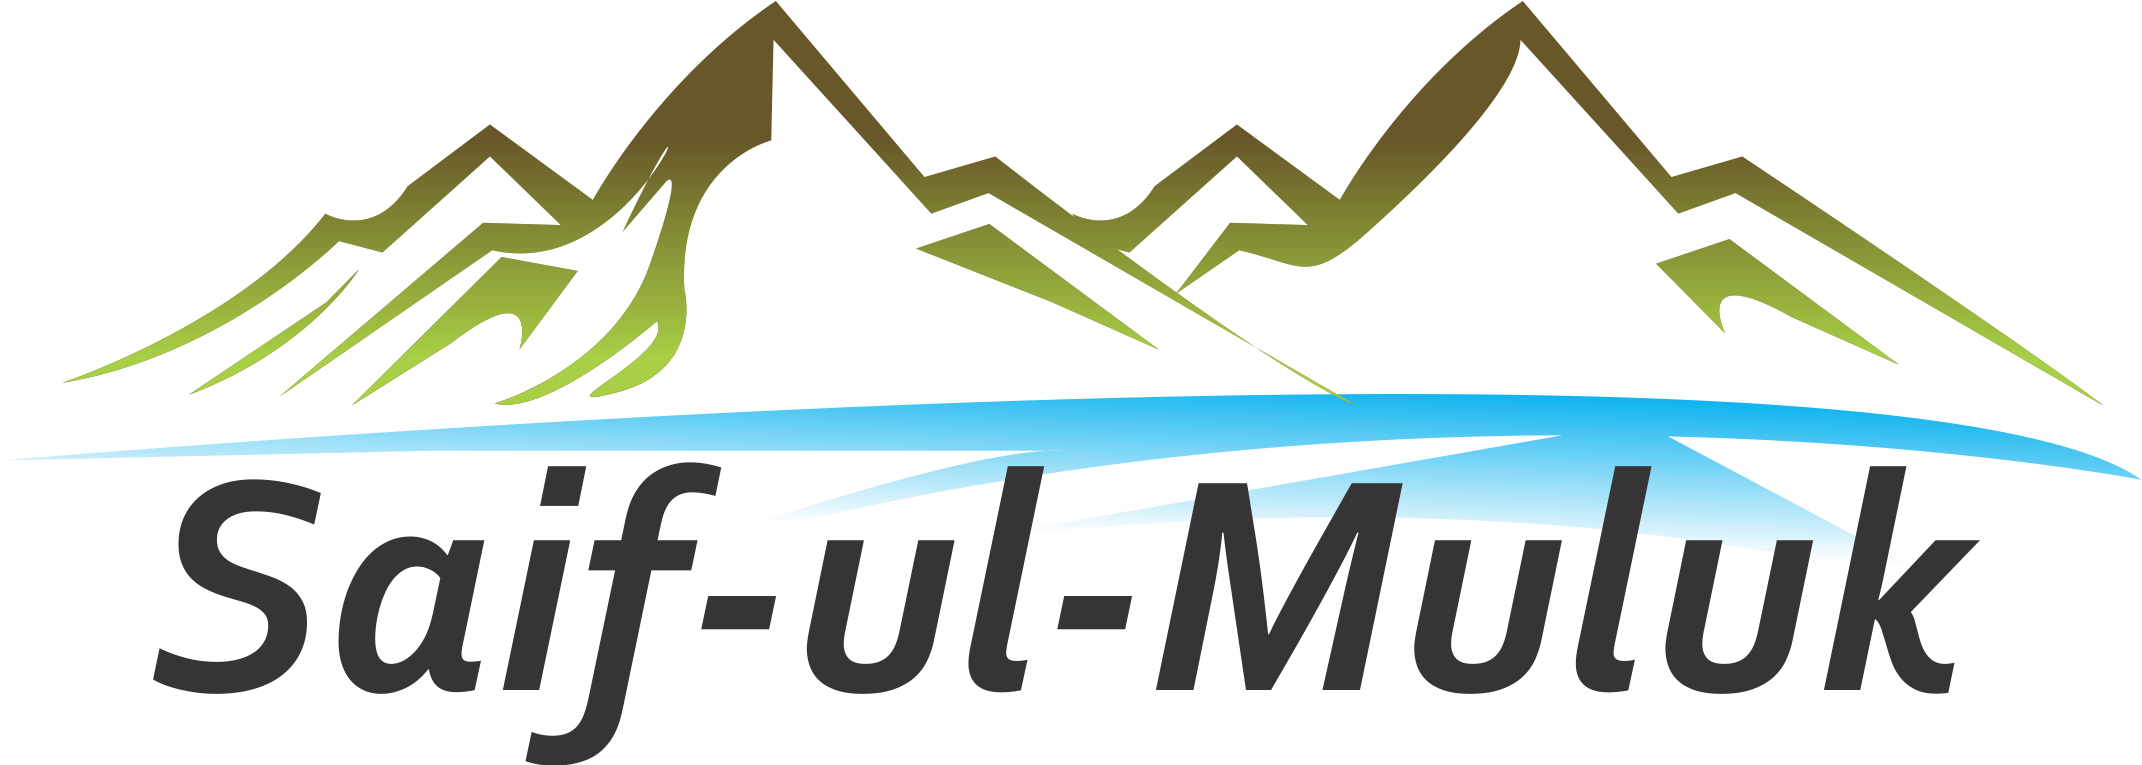 SaifulMuluk Tour and Travel Company | Saif-Ul-Muluk | Car Archives - SaifulMuluk Tour and Travel Company | Saif-Ul-Muluk